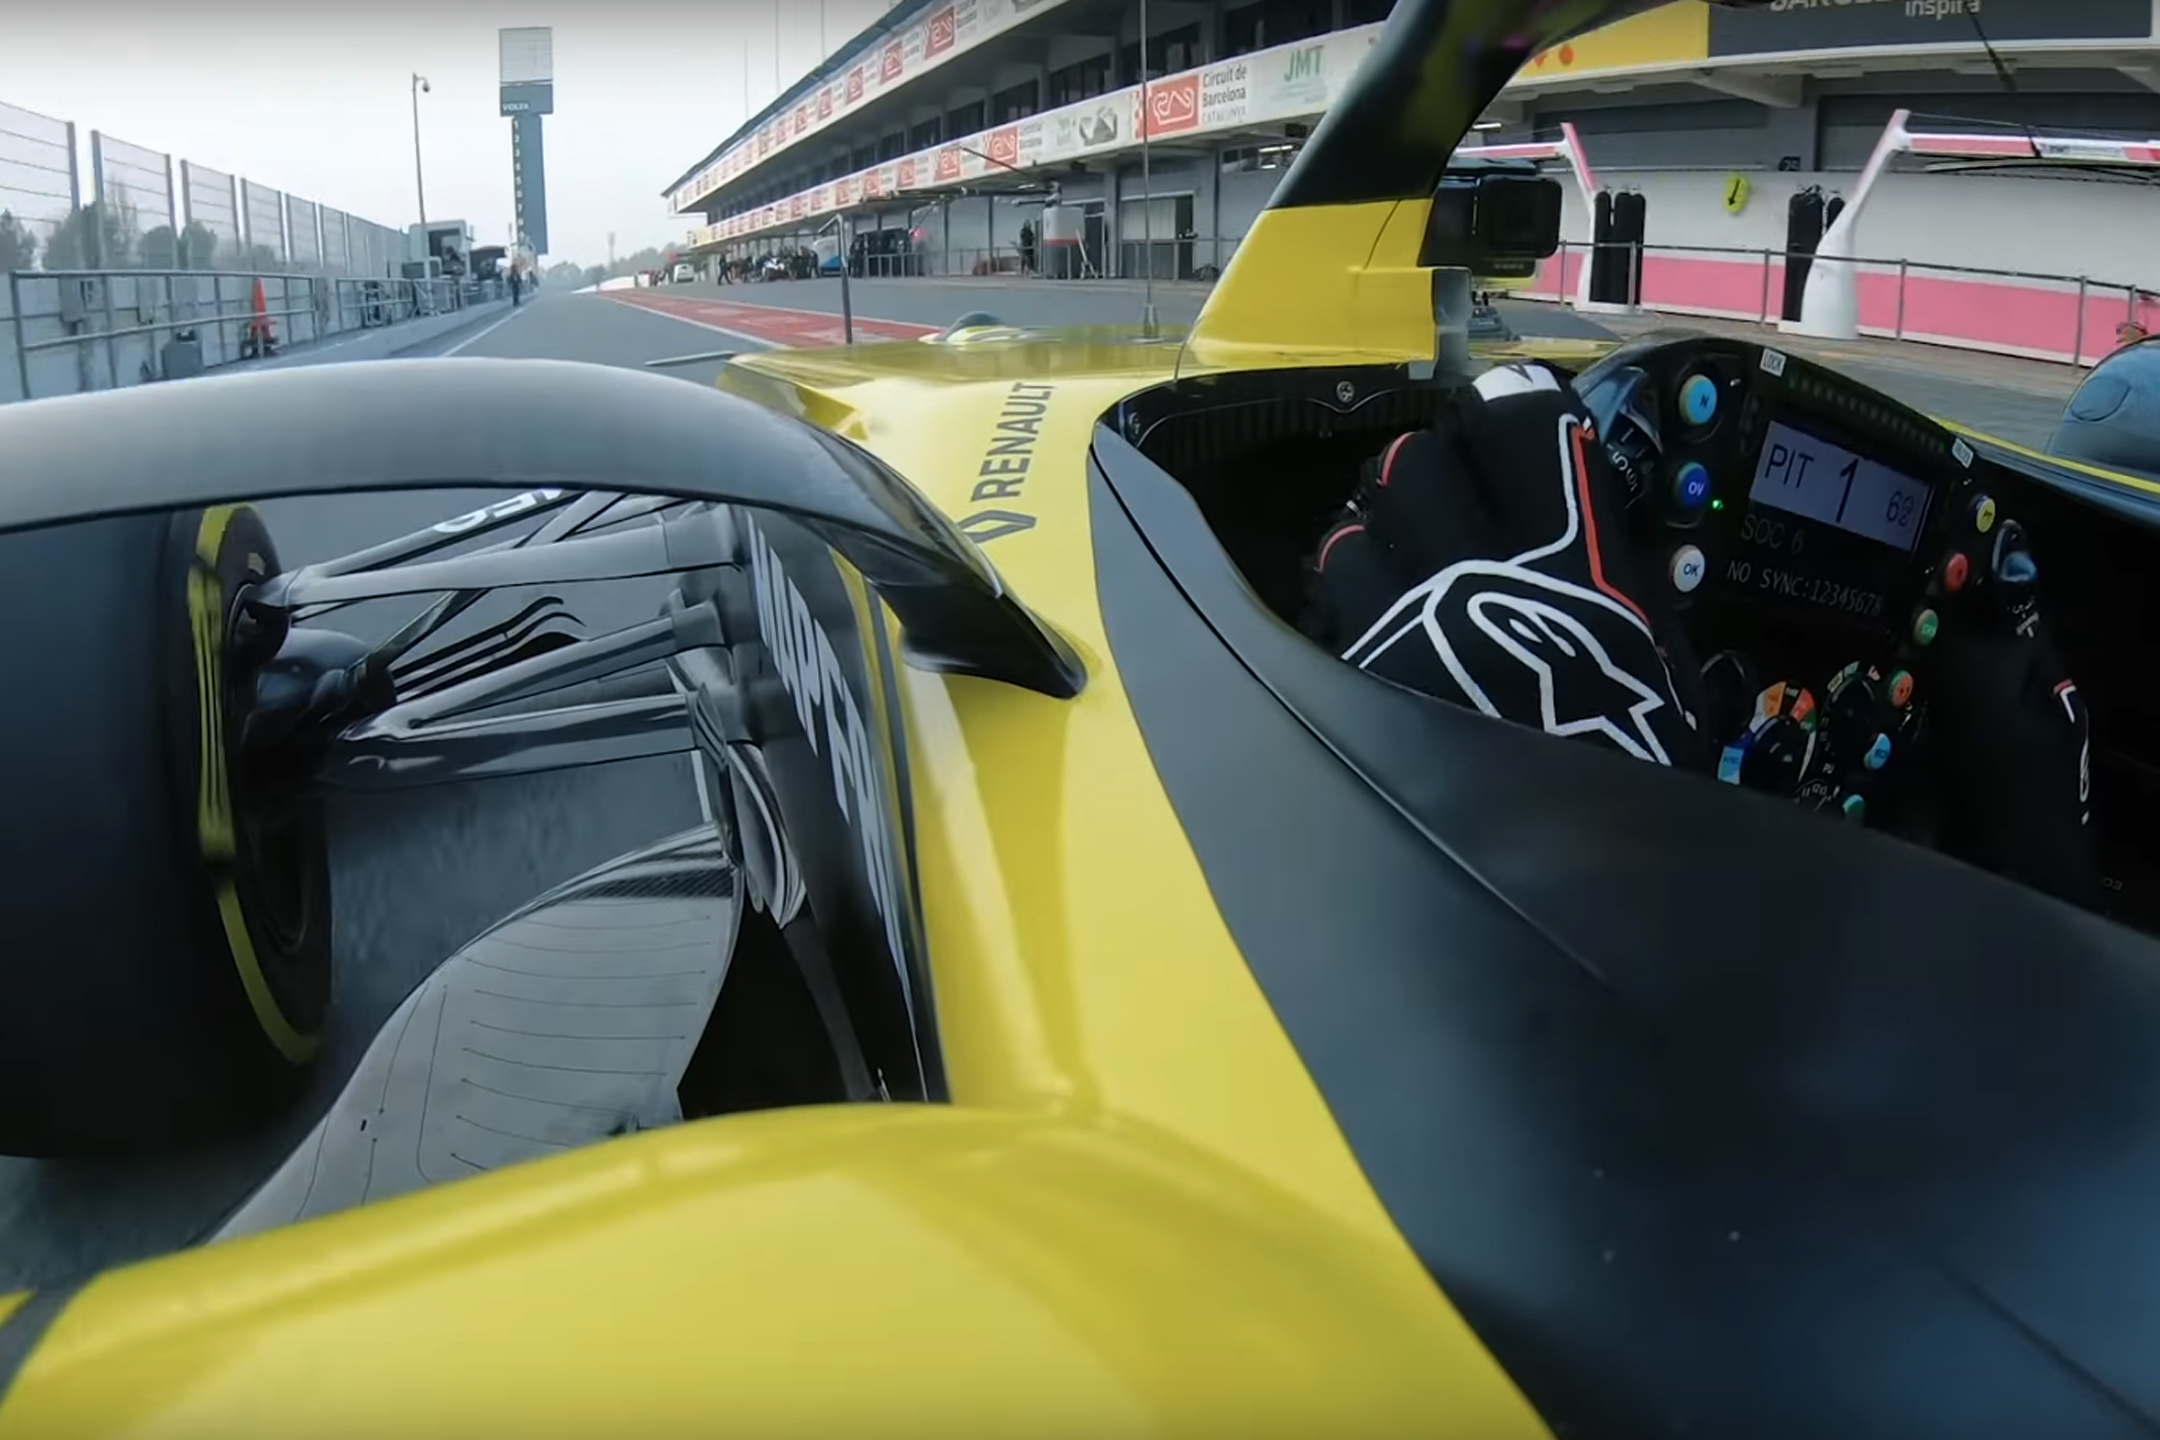 F1 - Renault F1 Team - R.S. 20 - 2020 - onboard pitlane to track - racing 1st lap livery - preview screen